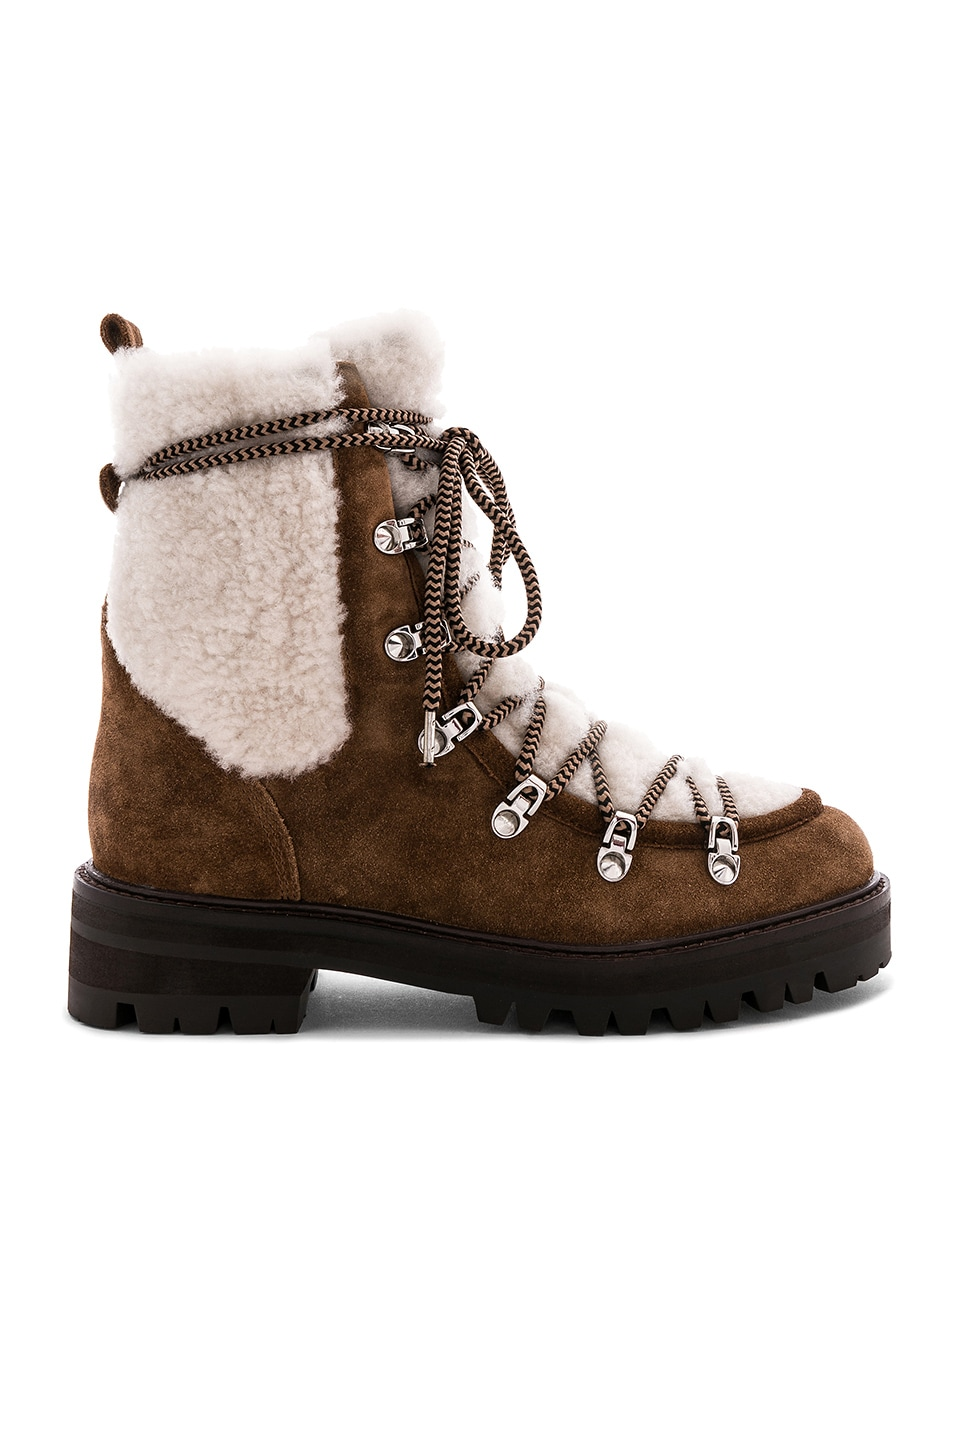 Sigerson Morrison Isla Fur Boot in Farro & Natural